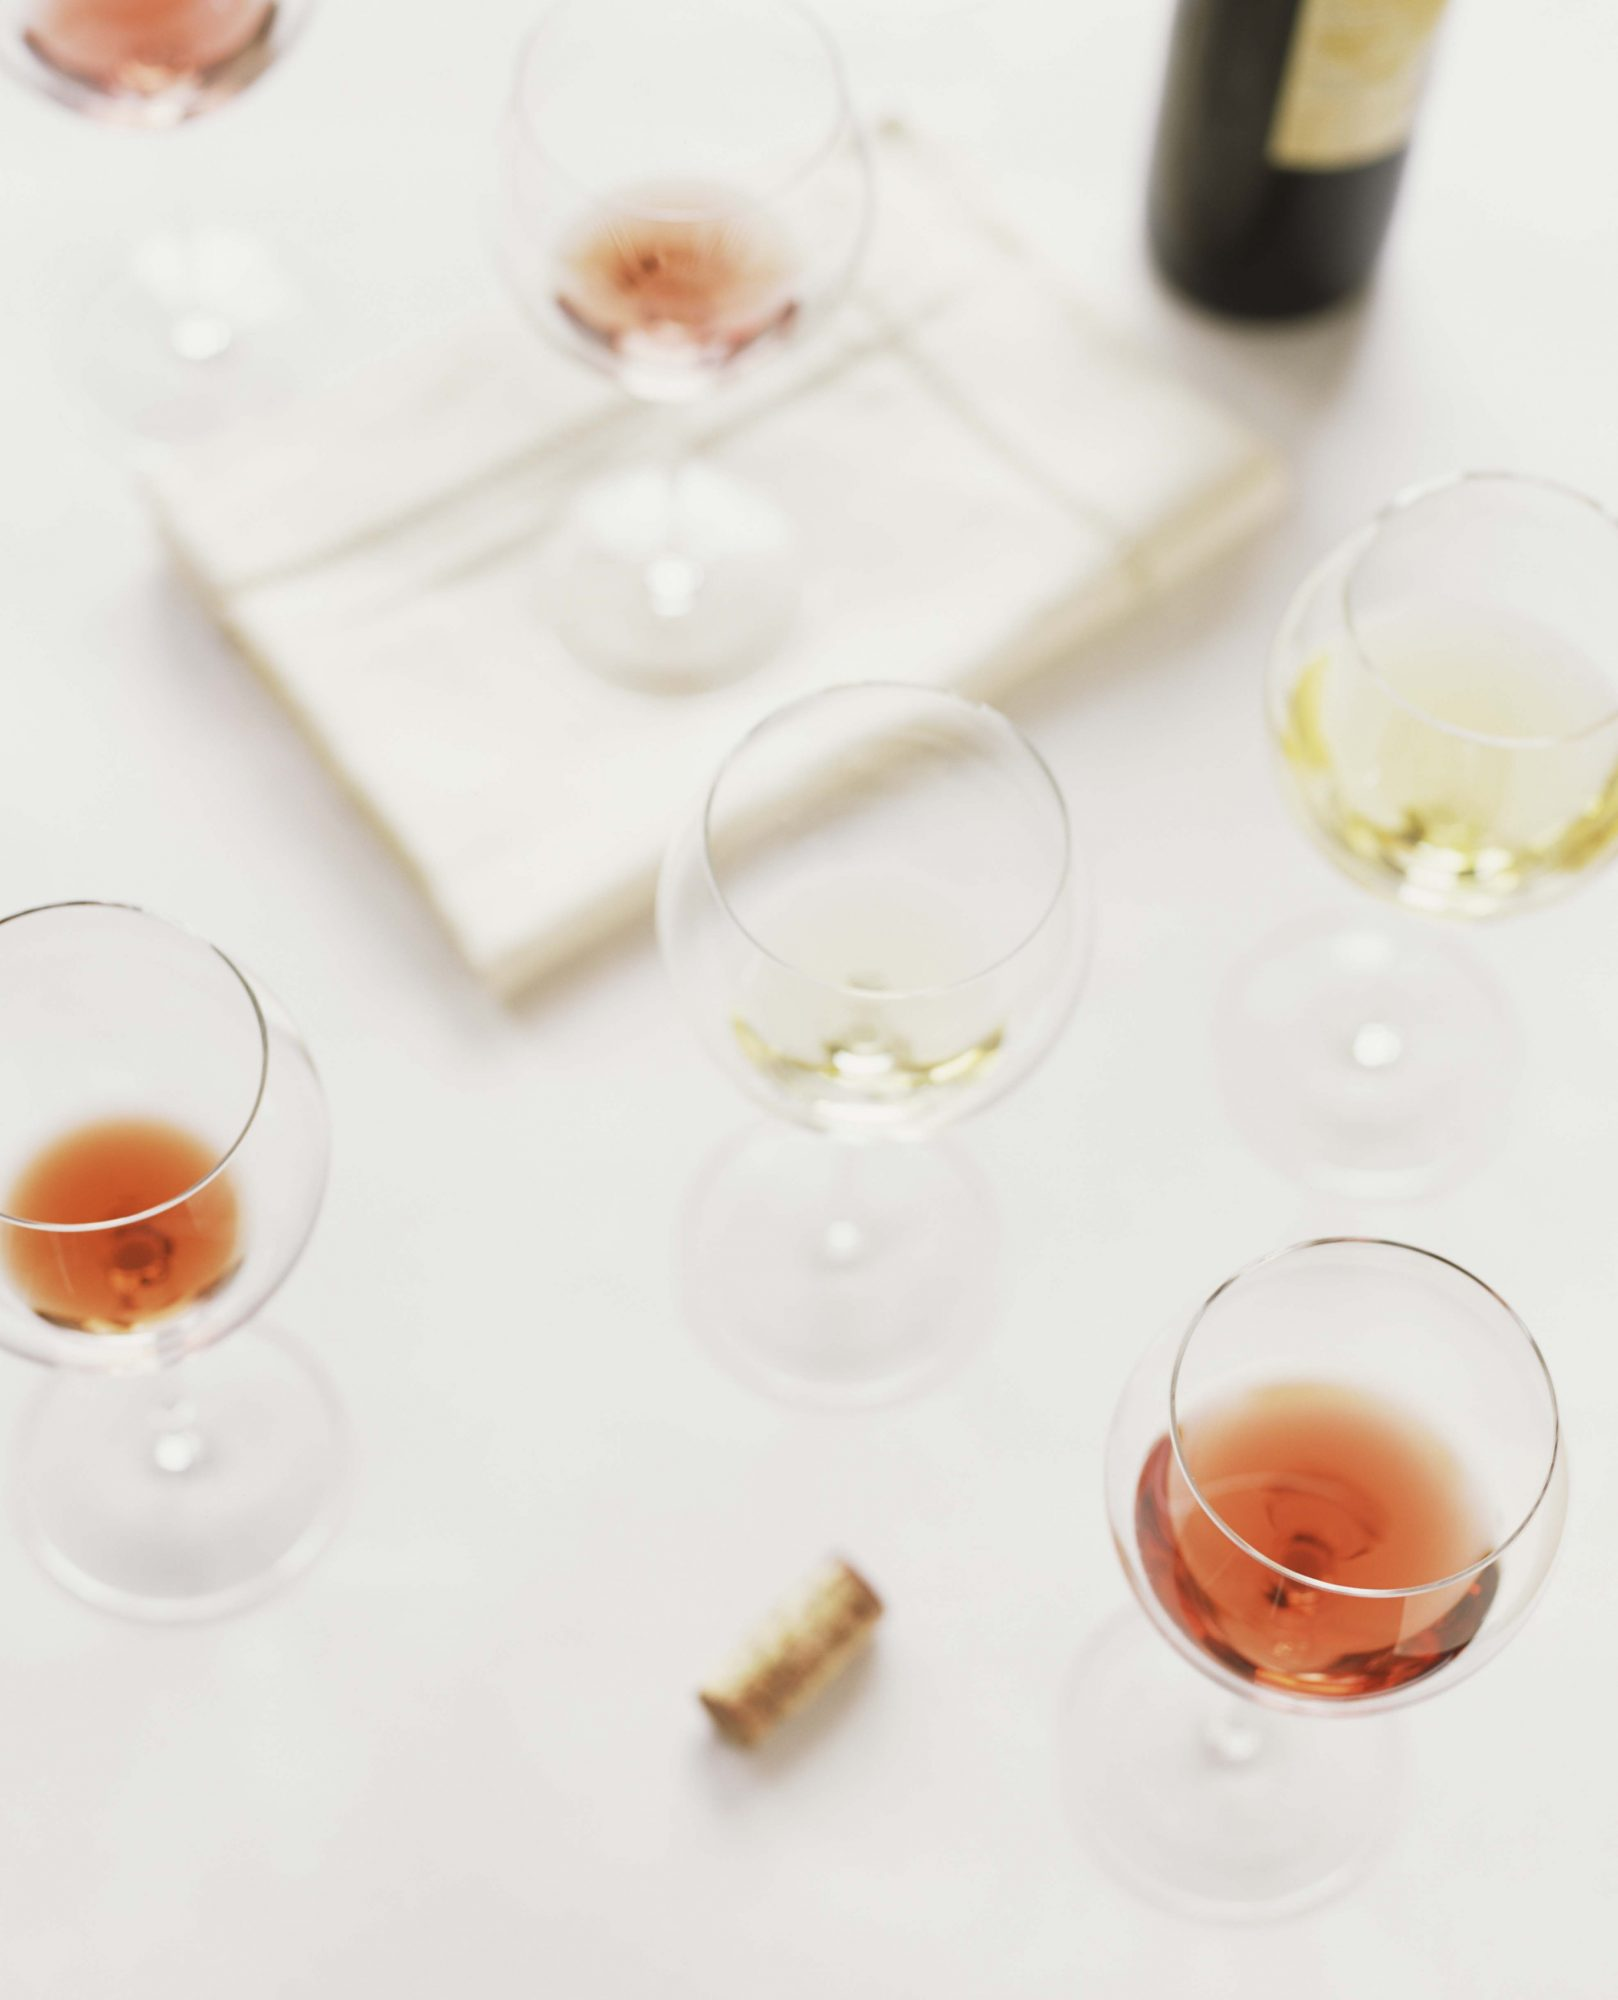 wine glasses with red and white wine for a wine tasting